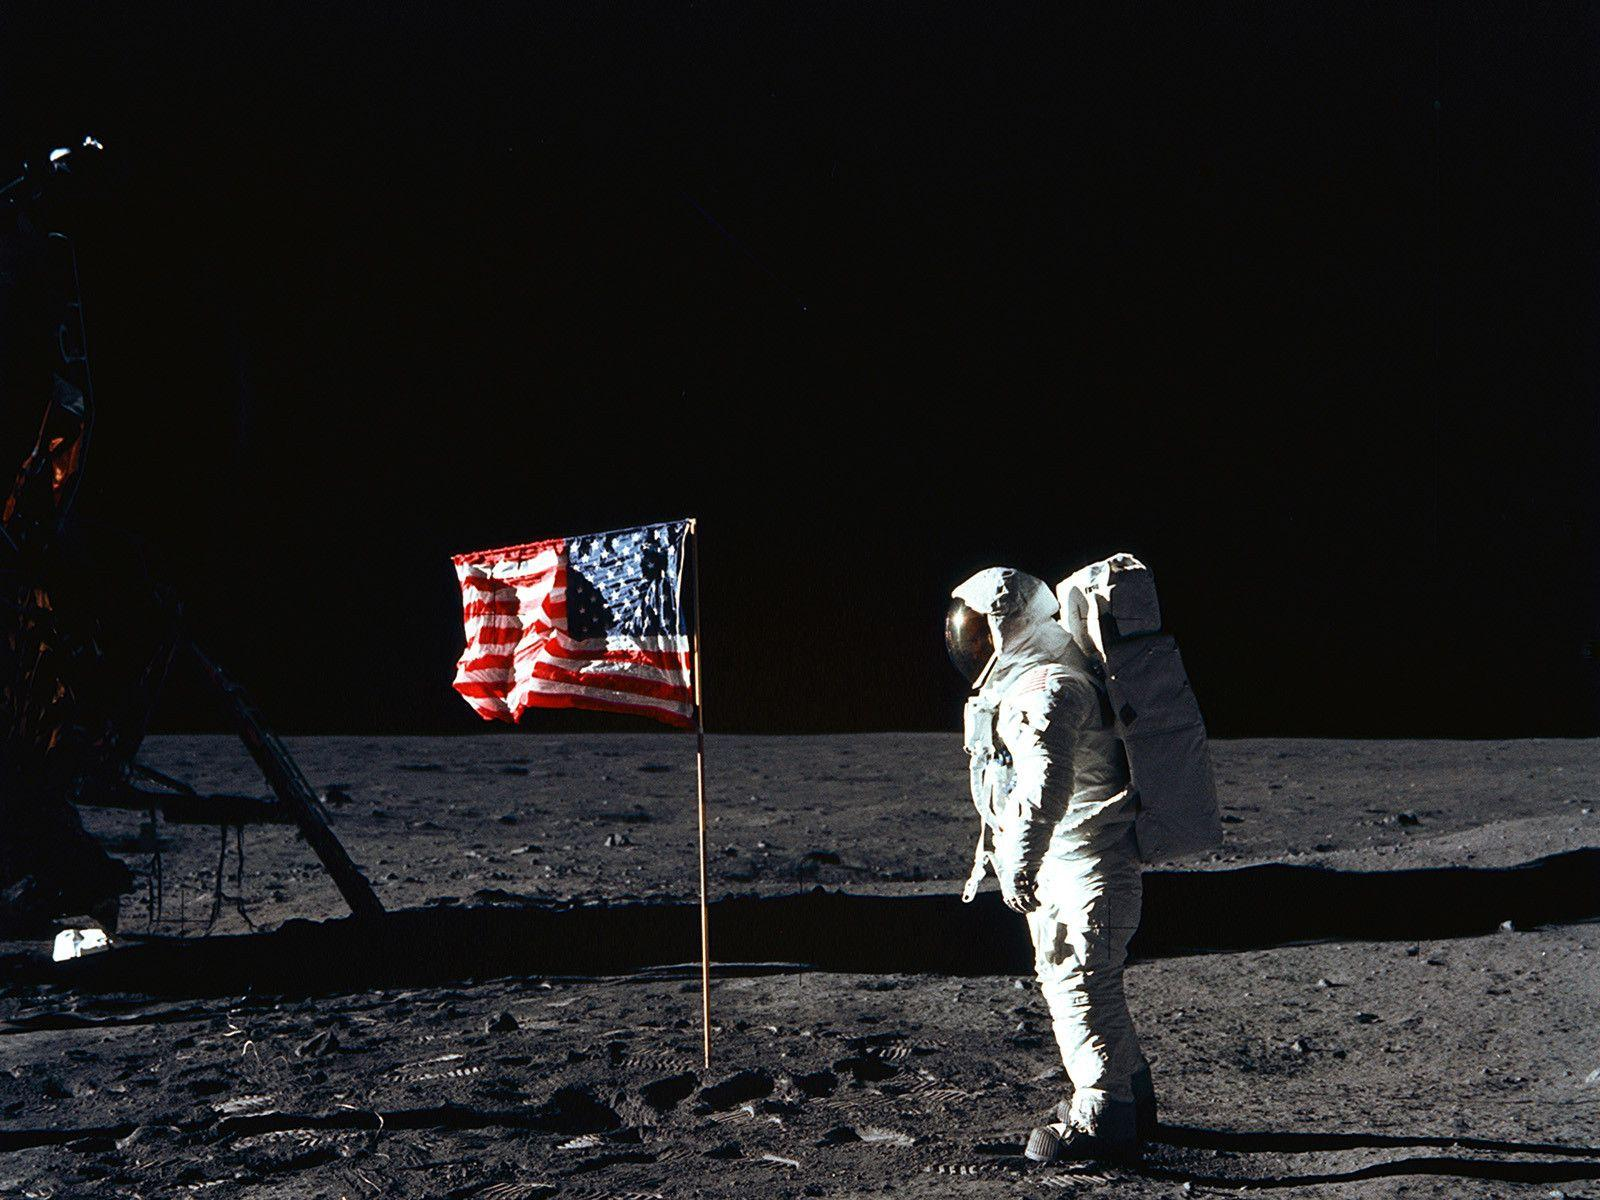 Image For > Apollo 11 Moon Landing Nasa